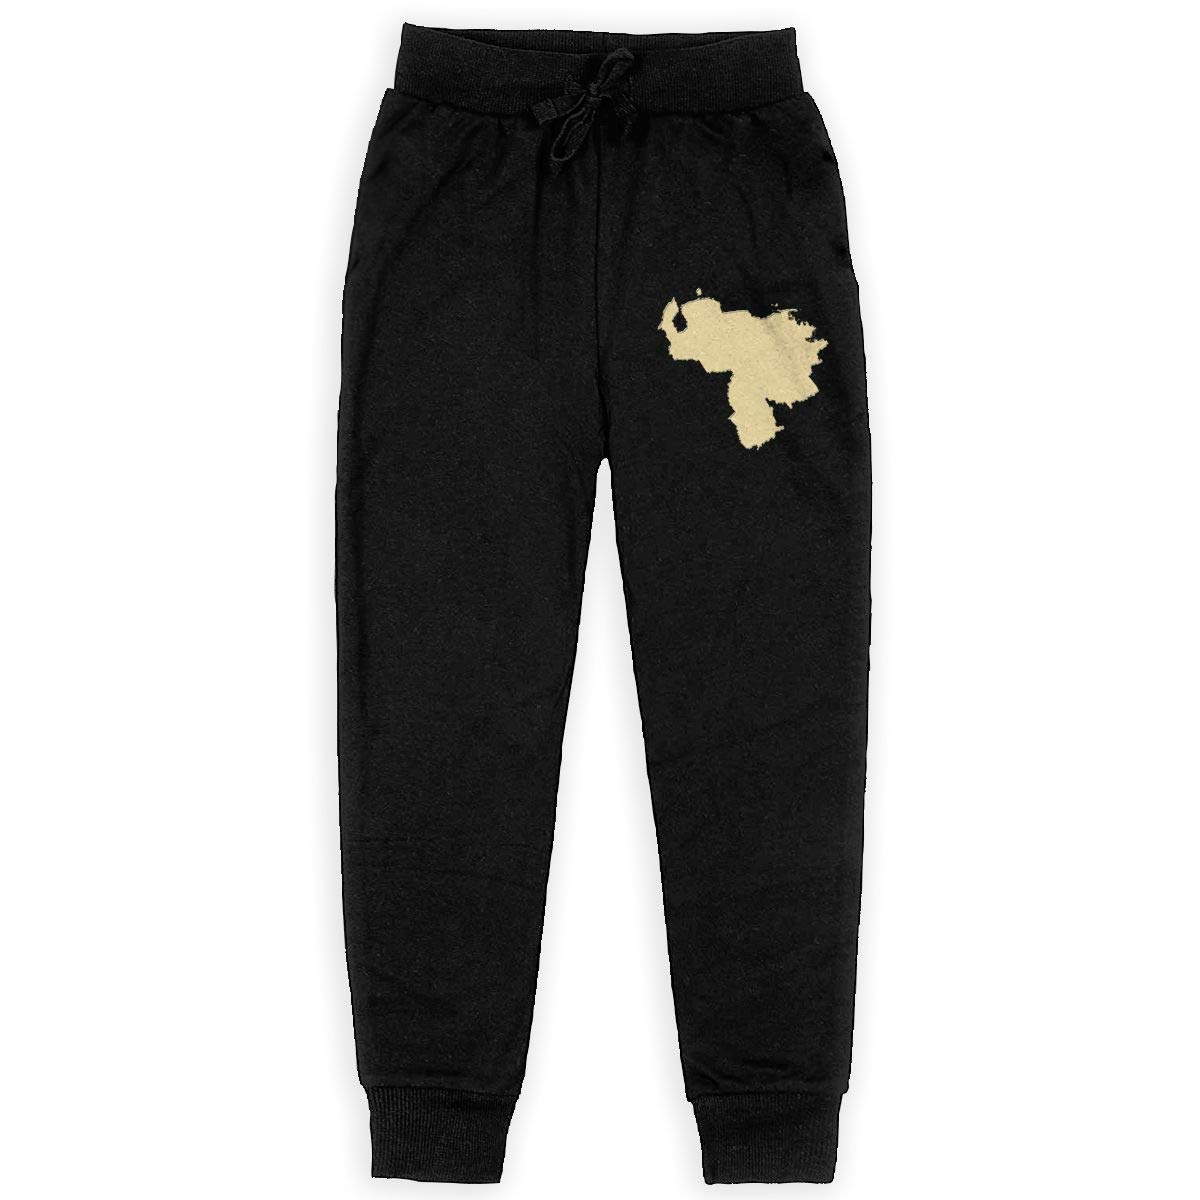 LETE Unisex Youth Active Basic Jogger Fleece Pants Training Pants with Pockets Mens Make America Grateful Again